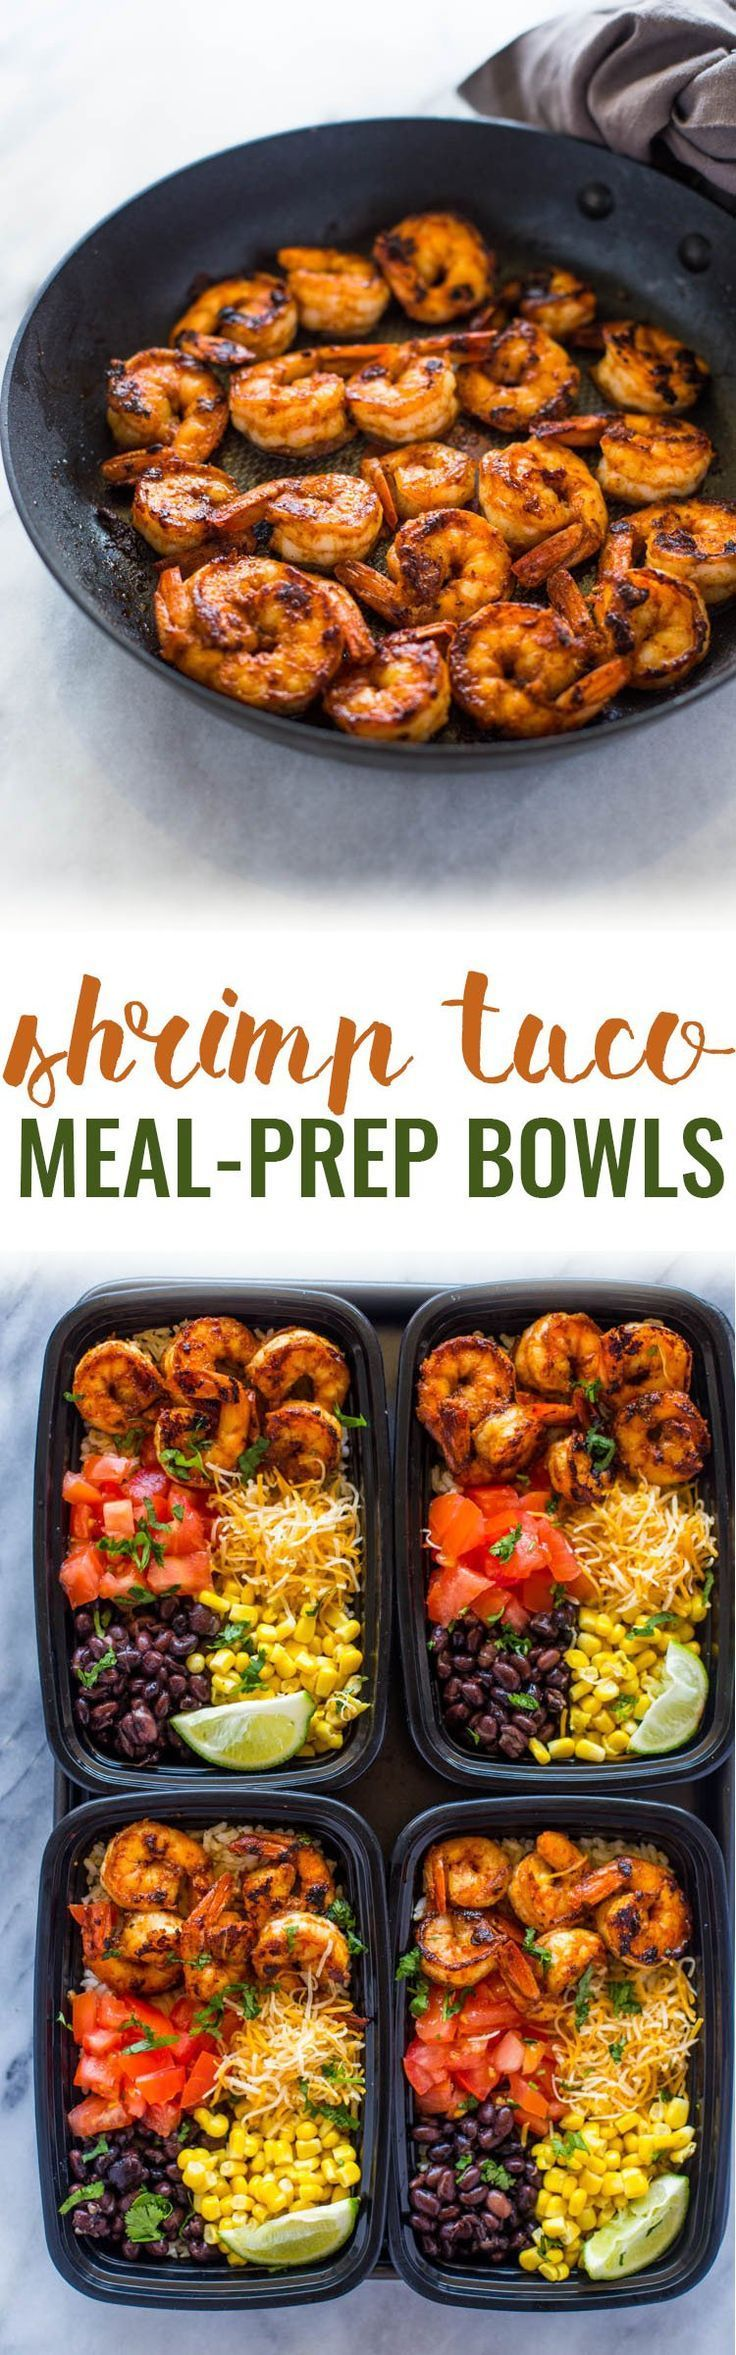 Healthy Shrimp Taco Meal Prep Bowls - add 4 more blocks of protein and the entire recipe would be 28 blocks, or (7) 4 block meals